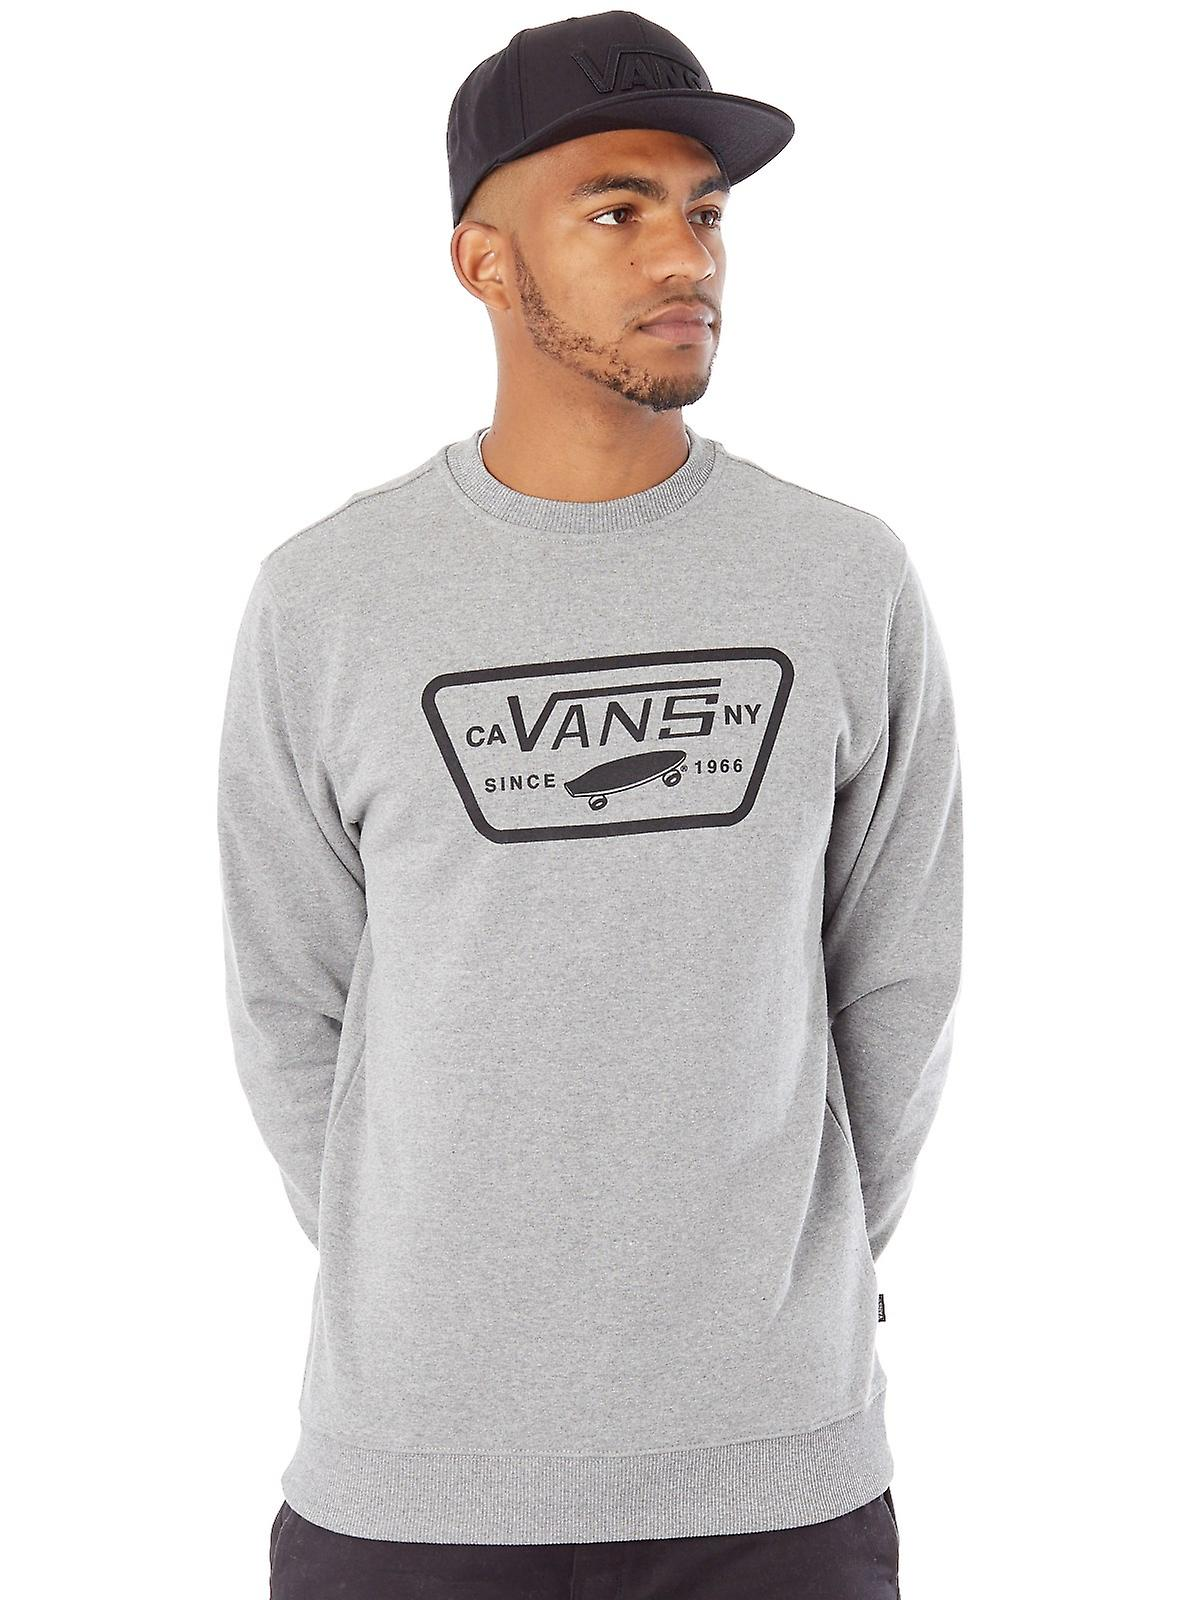 0712f0536845 Vans Concrete Heather Full Patch Sweater